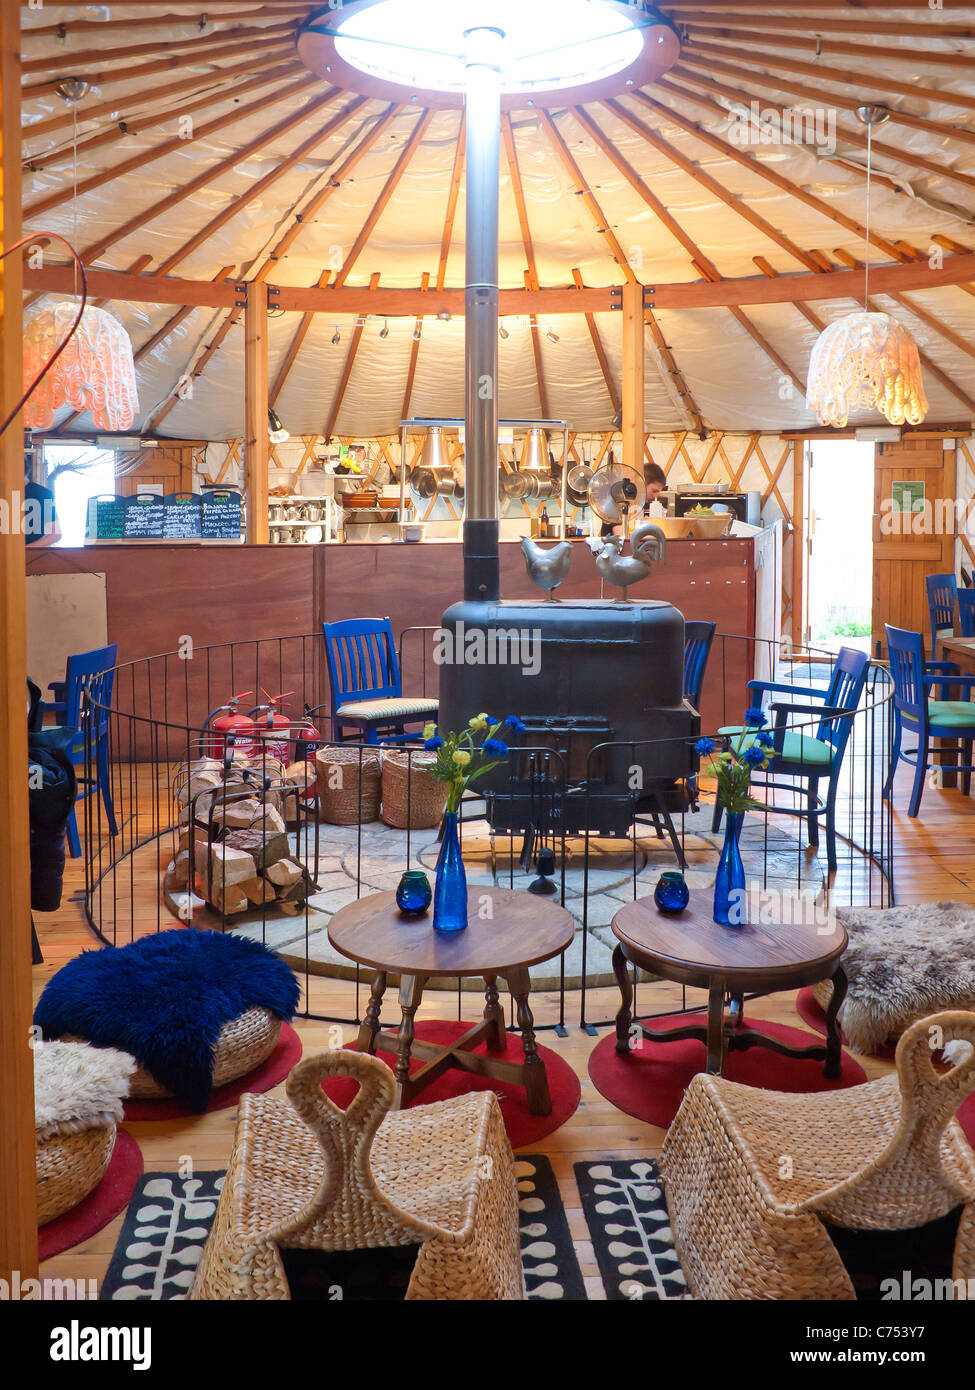 Interior Of A Restaurant In A Traditional Mongolian Yurt At Thornham  Norfolk UK